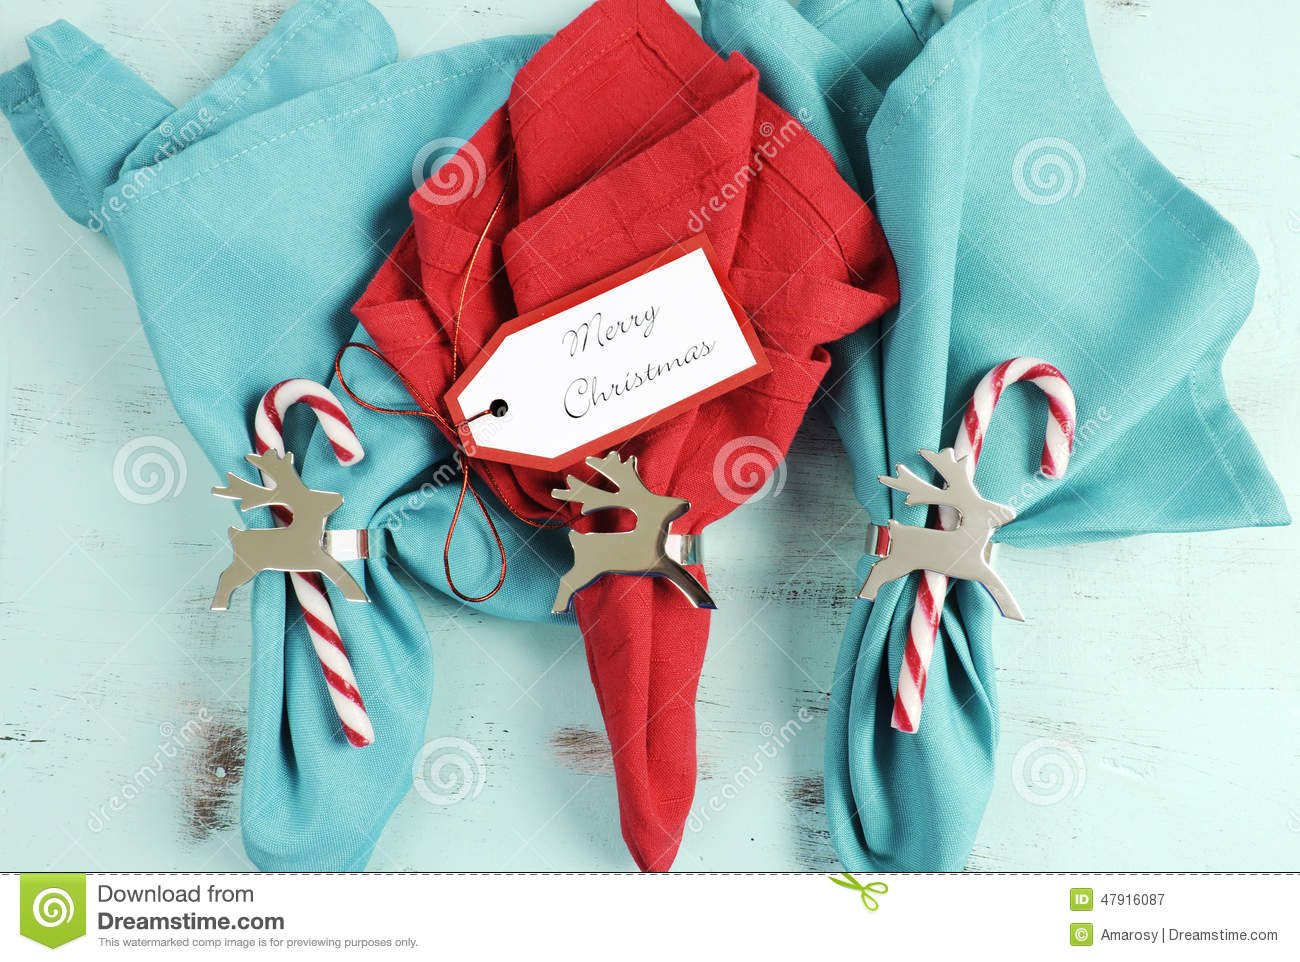 Merry Christmas Table Place Setting Red And Aqua Blue Napkins Stock Image Image Of Noel Pale 47916087